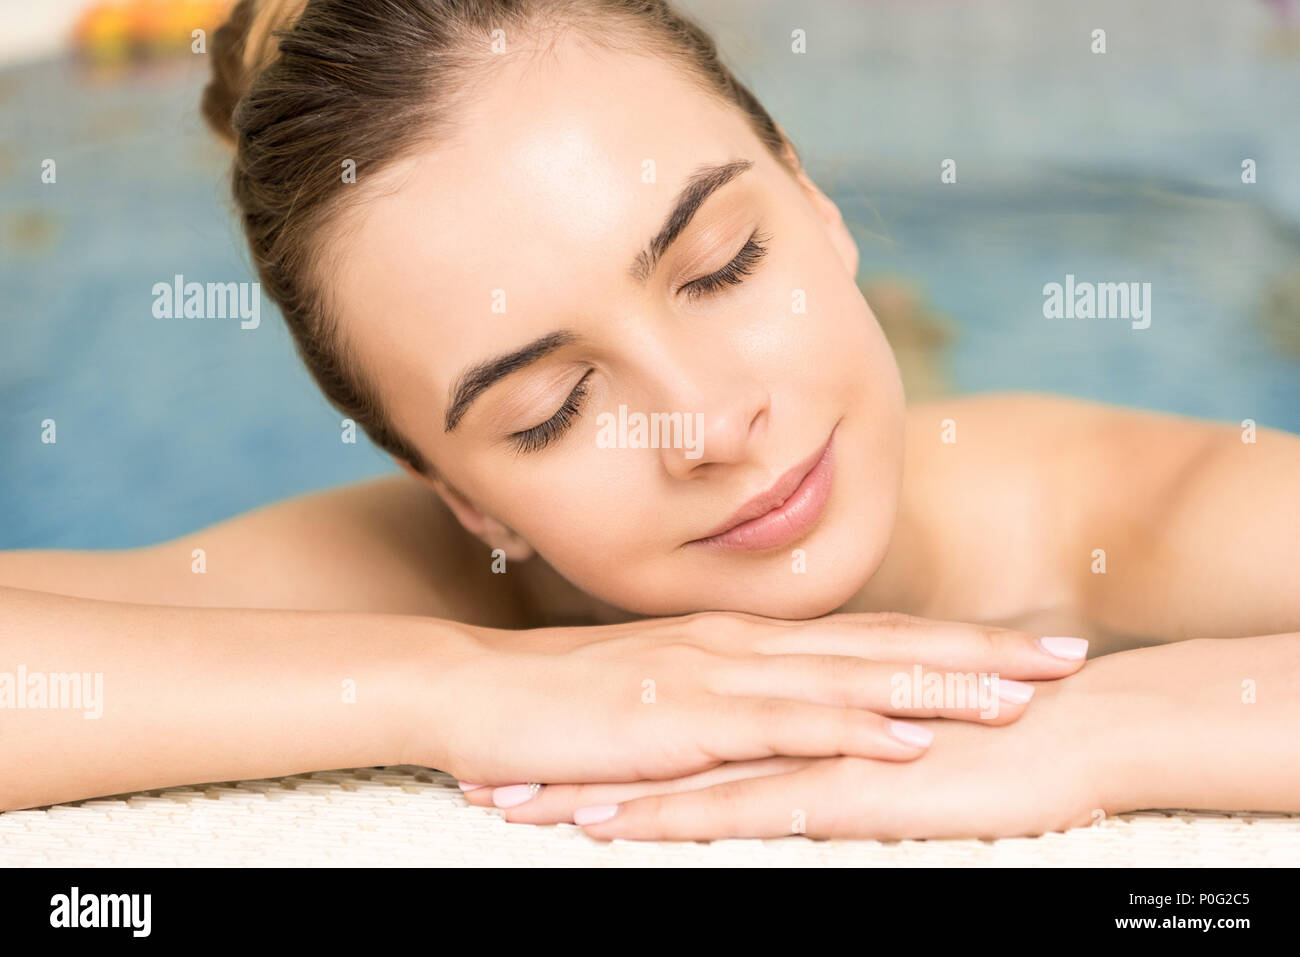 attractive smiling woman with closed eyes relaxing on spa procedure - Stock Image